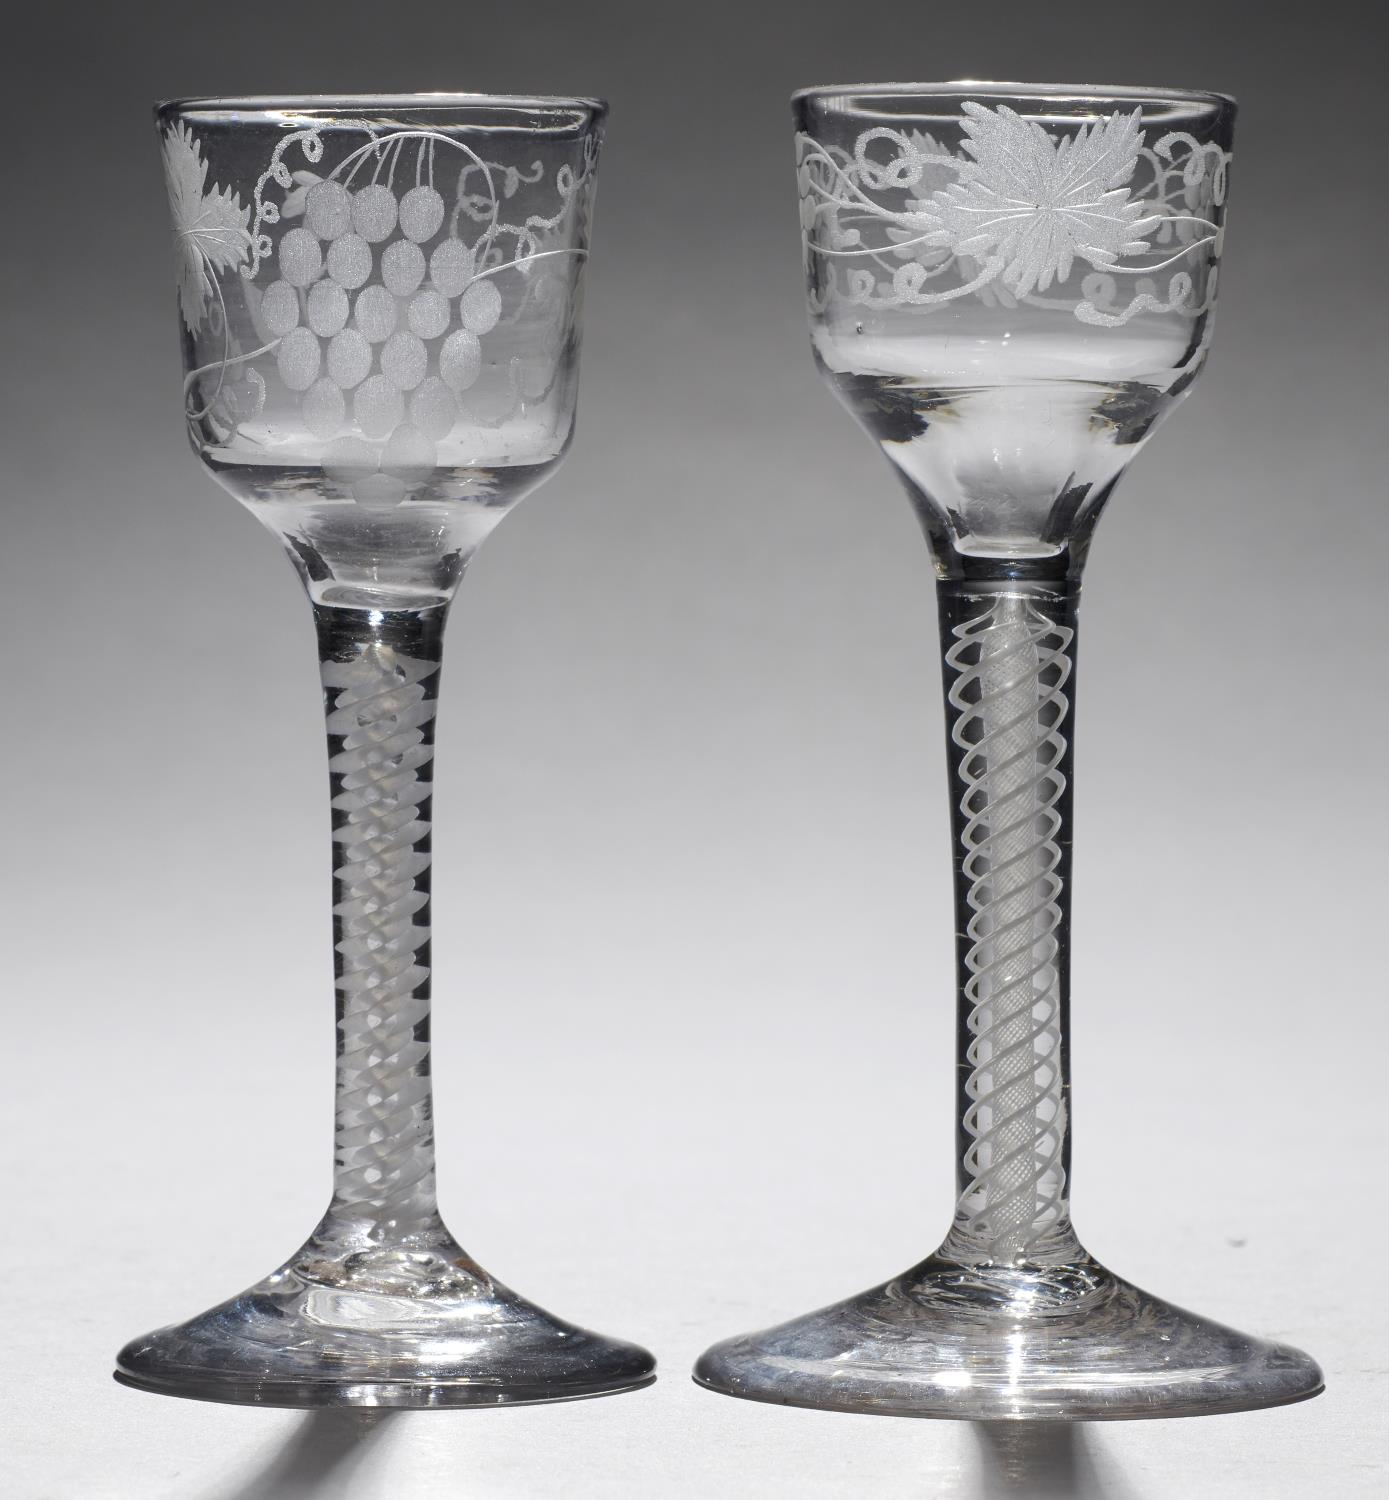 Lot 362 - TWO ENGLISH WINE GLASSES, C1770  the ogee bowl engraved with grapevines on double series opaque